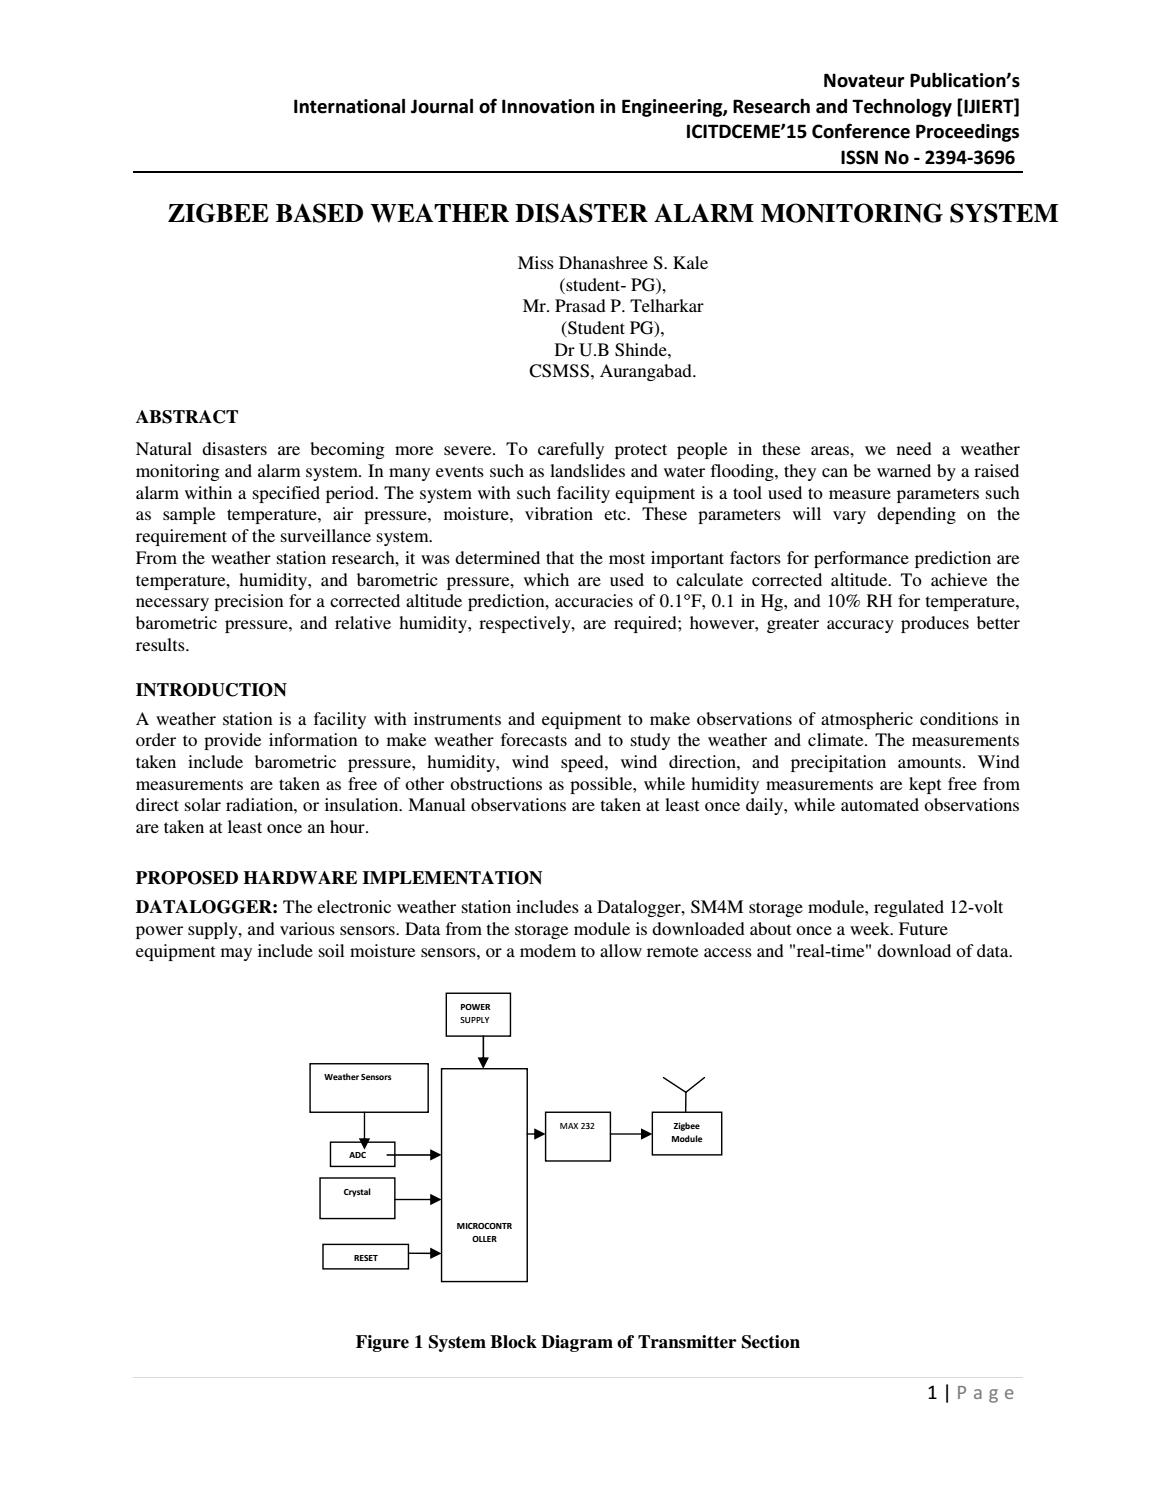 Ijiert Zigbee Based Weather Disaster Alarm Monitoring System By Figure 1 Transmitter Block Diagram Journal Issuu